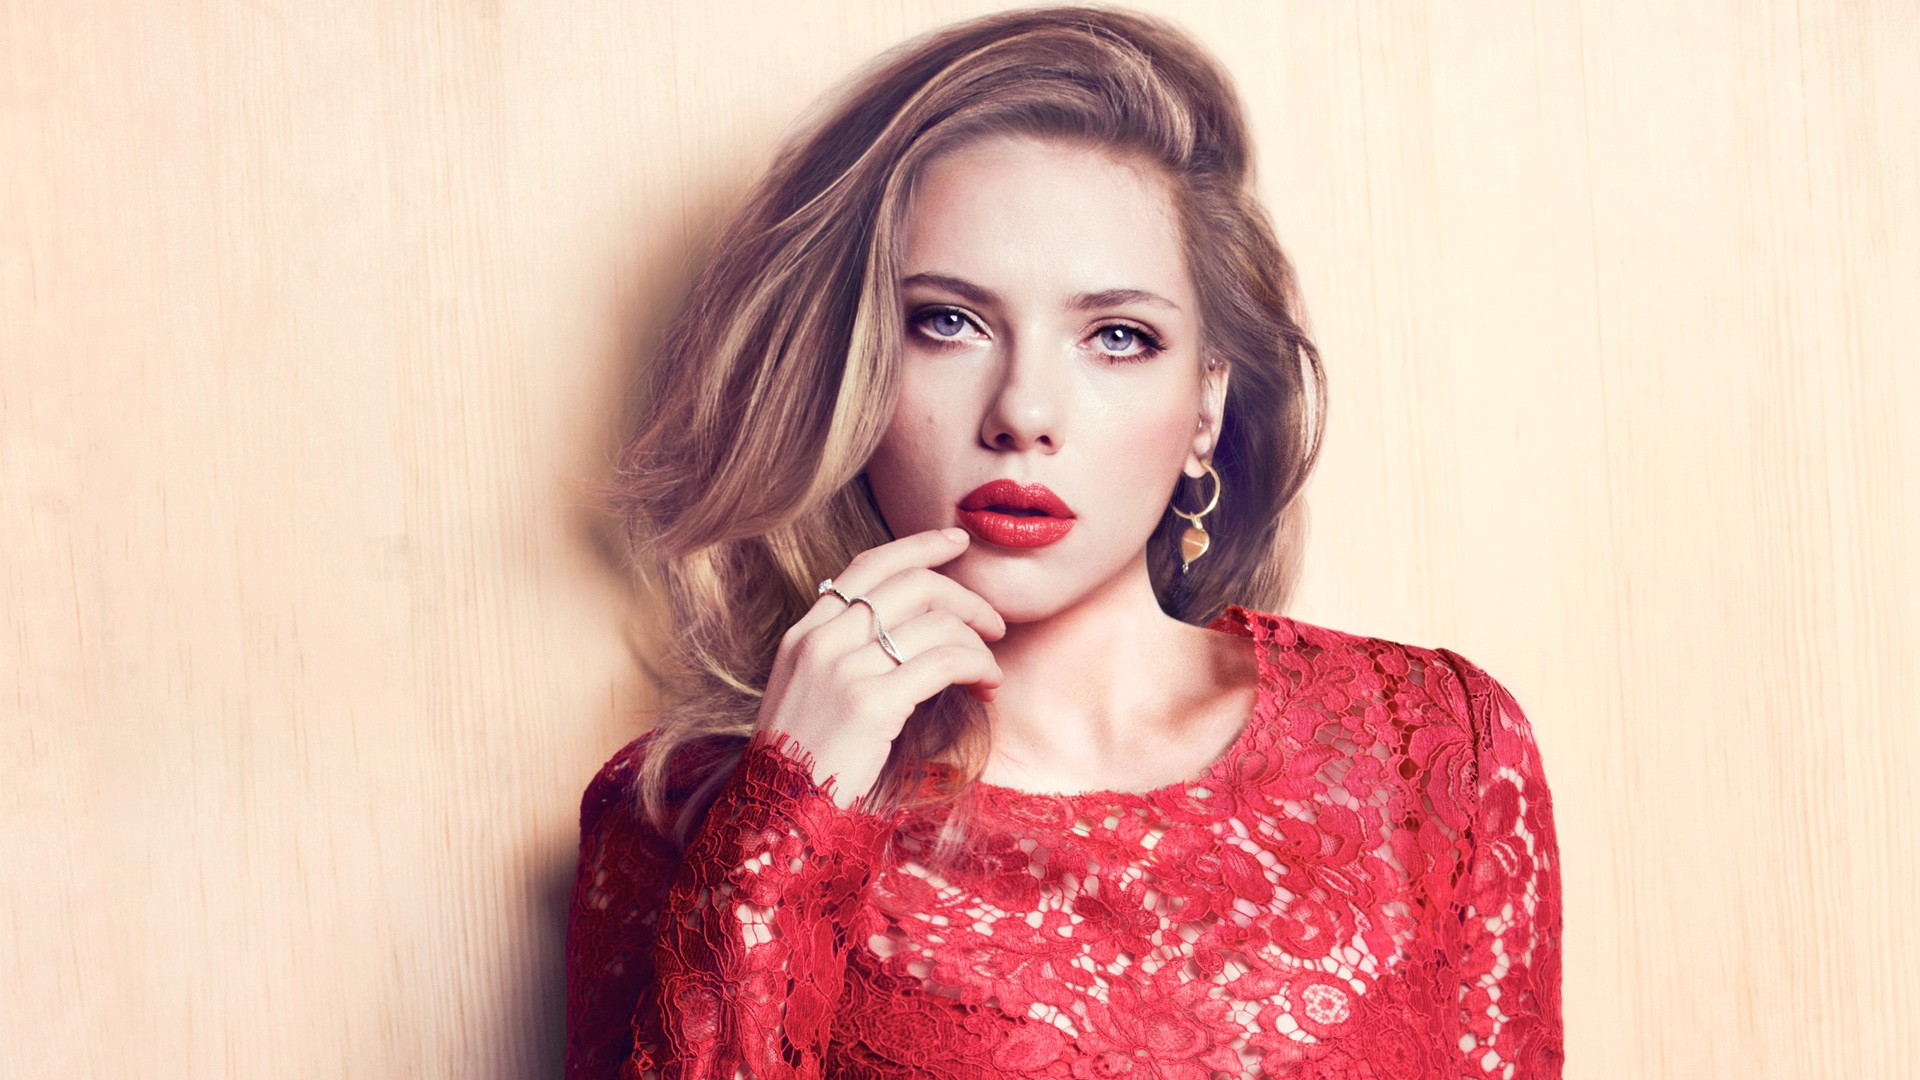 red river,marie,claire,fit,pinko,cherry,celebrities,johansson,kit,scarlet,red,scarlett,crimson,outfit,ruby,scarlett johansson,getup,redness